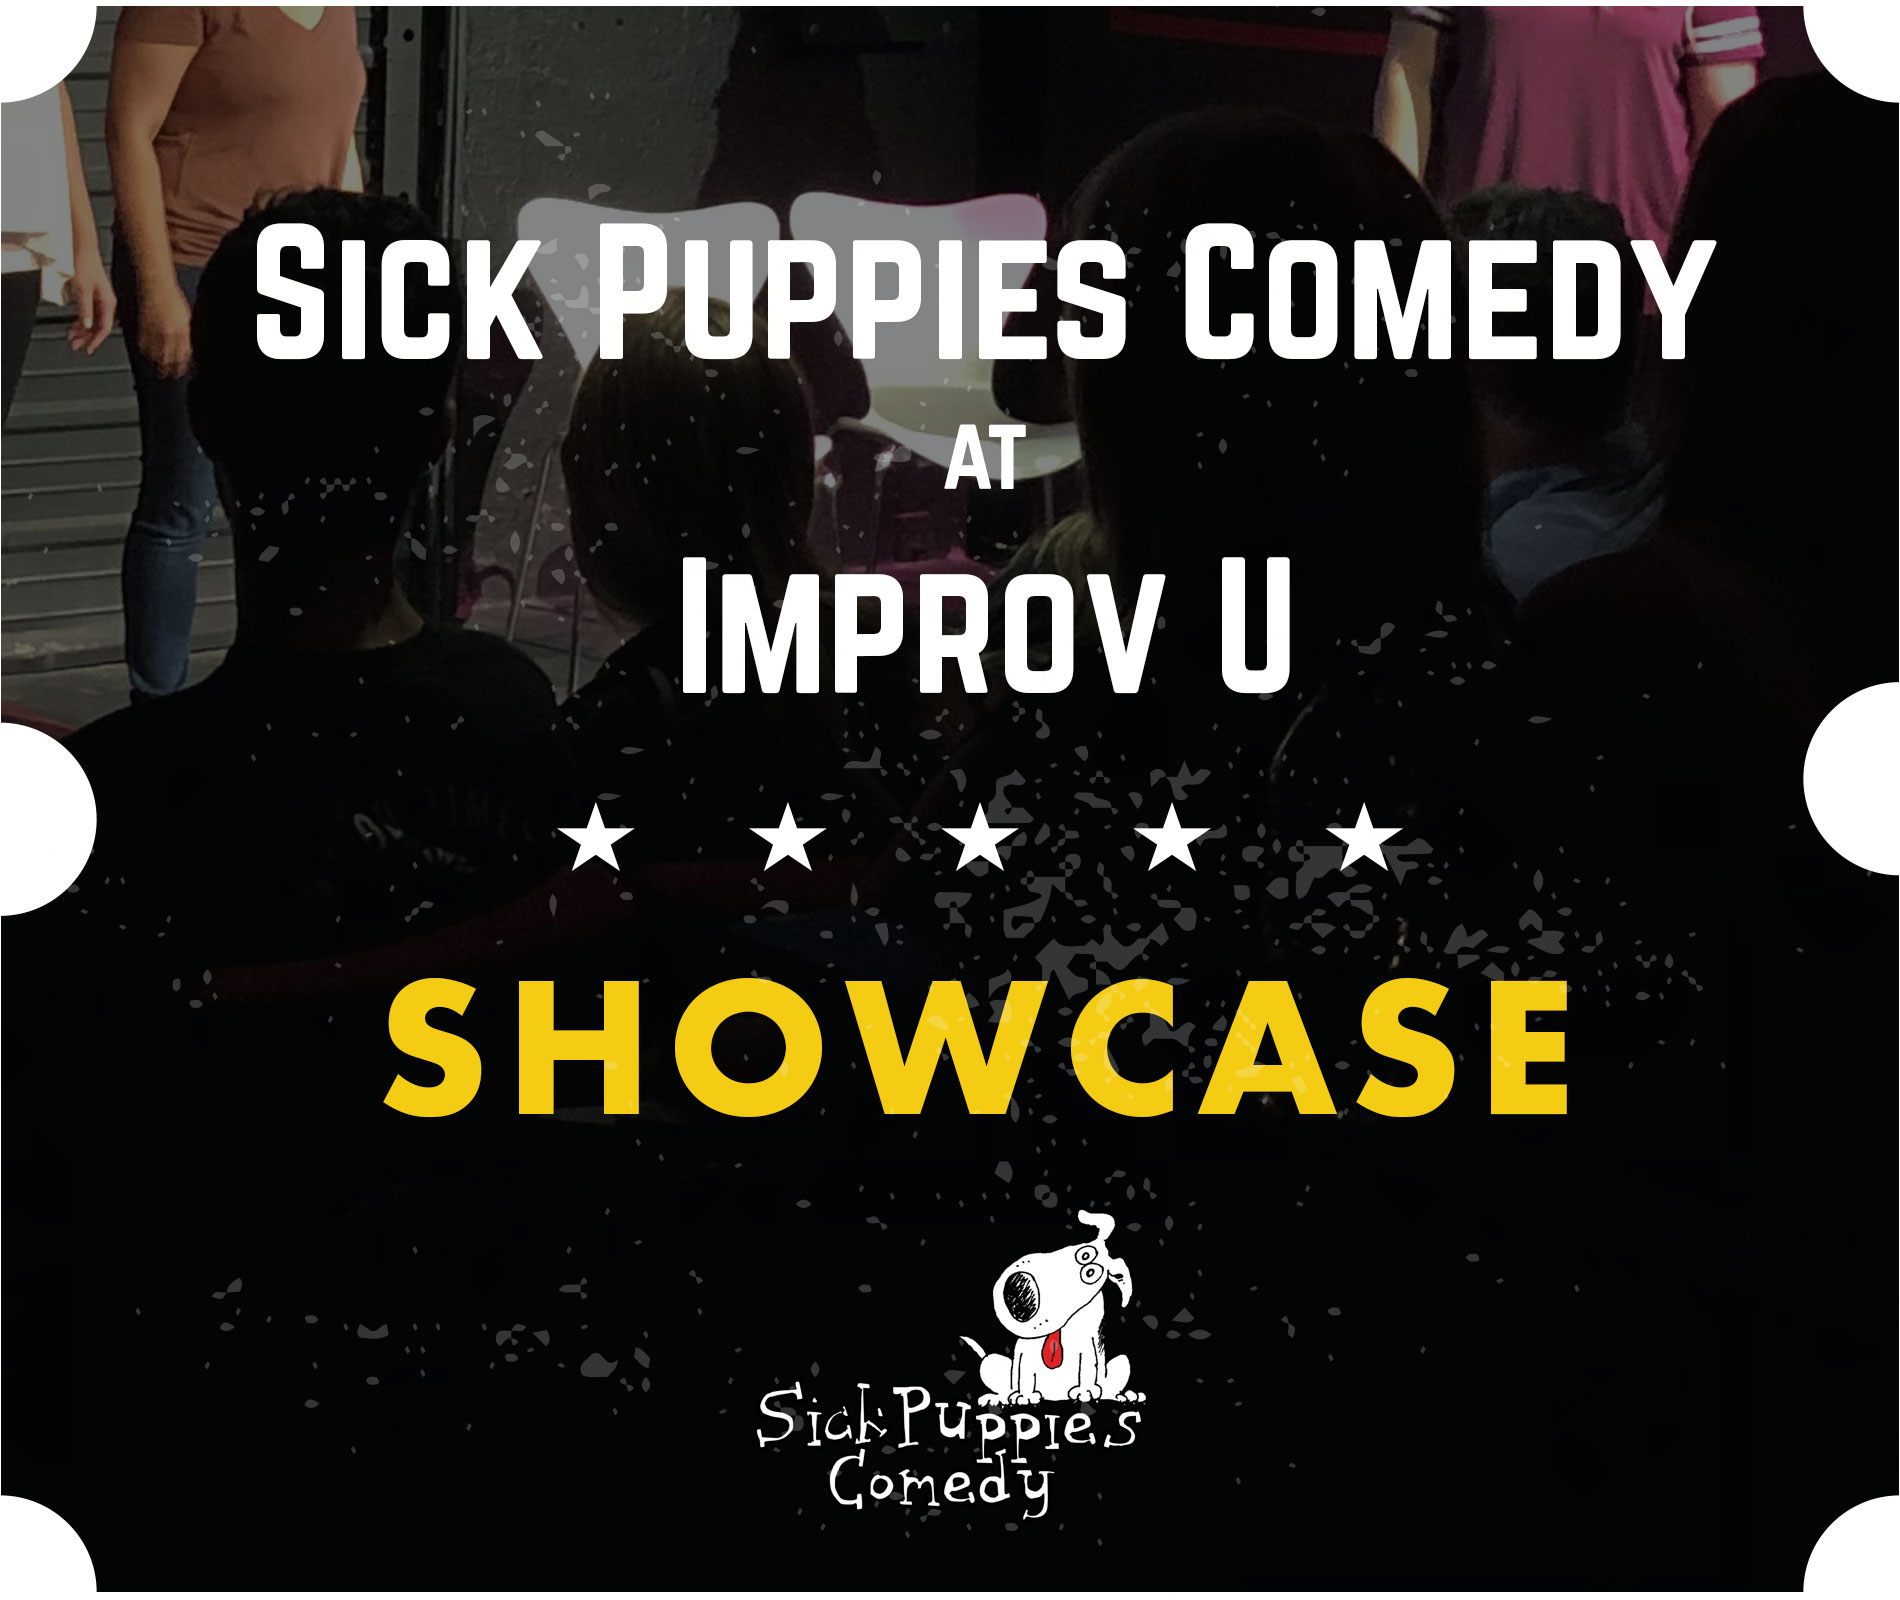 August 2, 2019 Sick Puppies Showcase